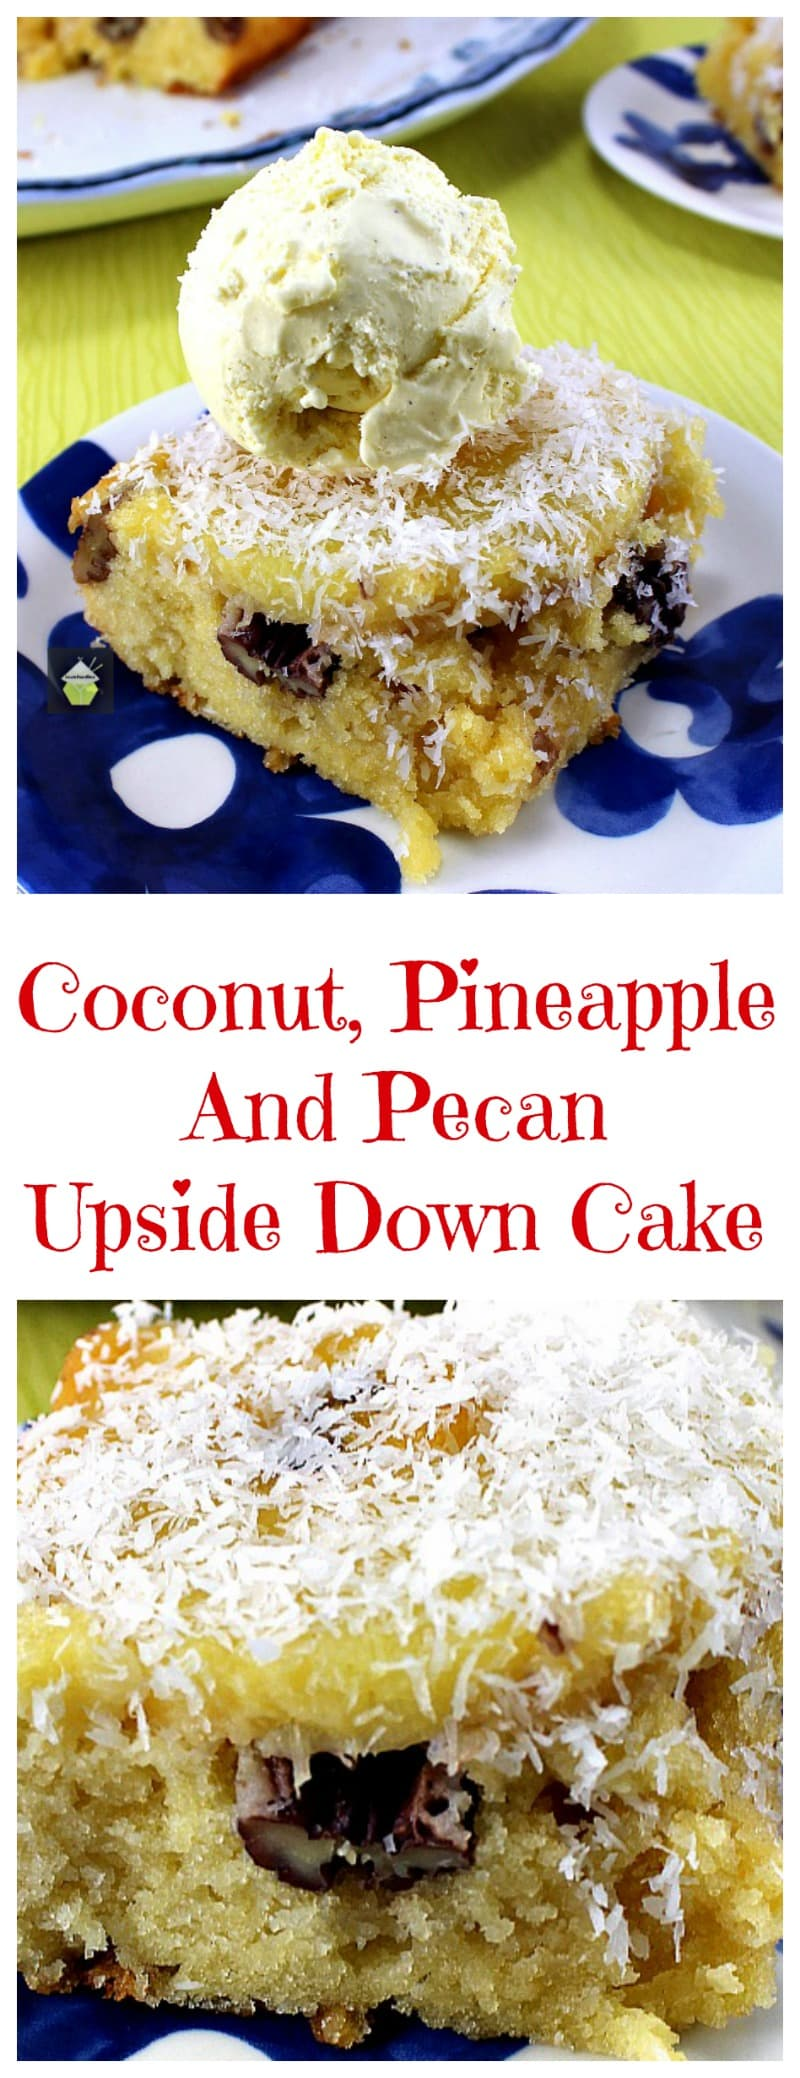 Coconut, Pineapple and Pecan Upside Down Cake! This is a fun pineapple and coconut upside down cake, very easy to make and a great flavor combination. Throw in a handful of pecans too for extra yumminess! Very easy recipe